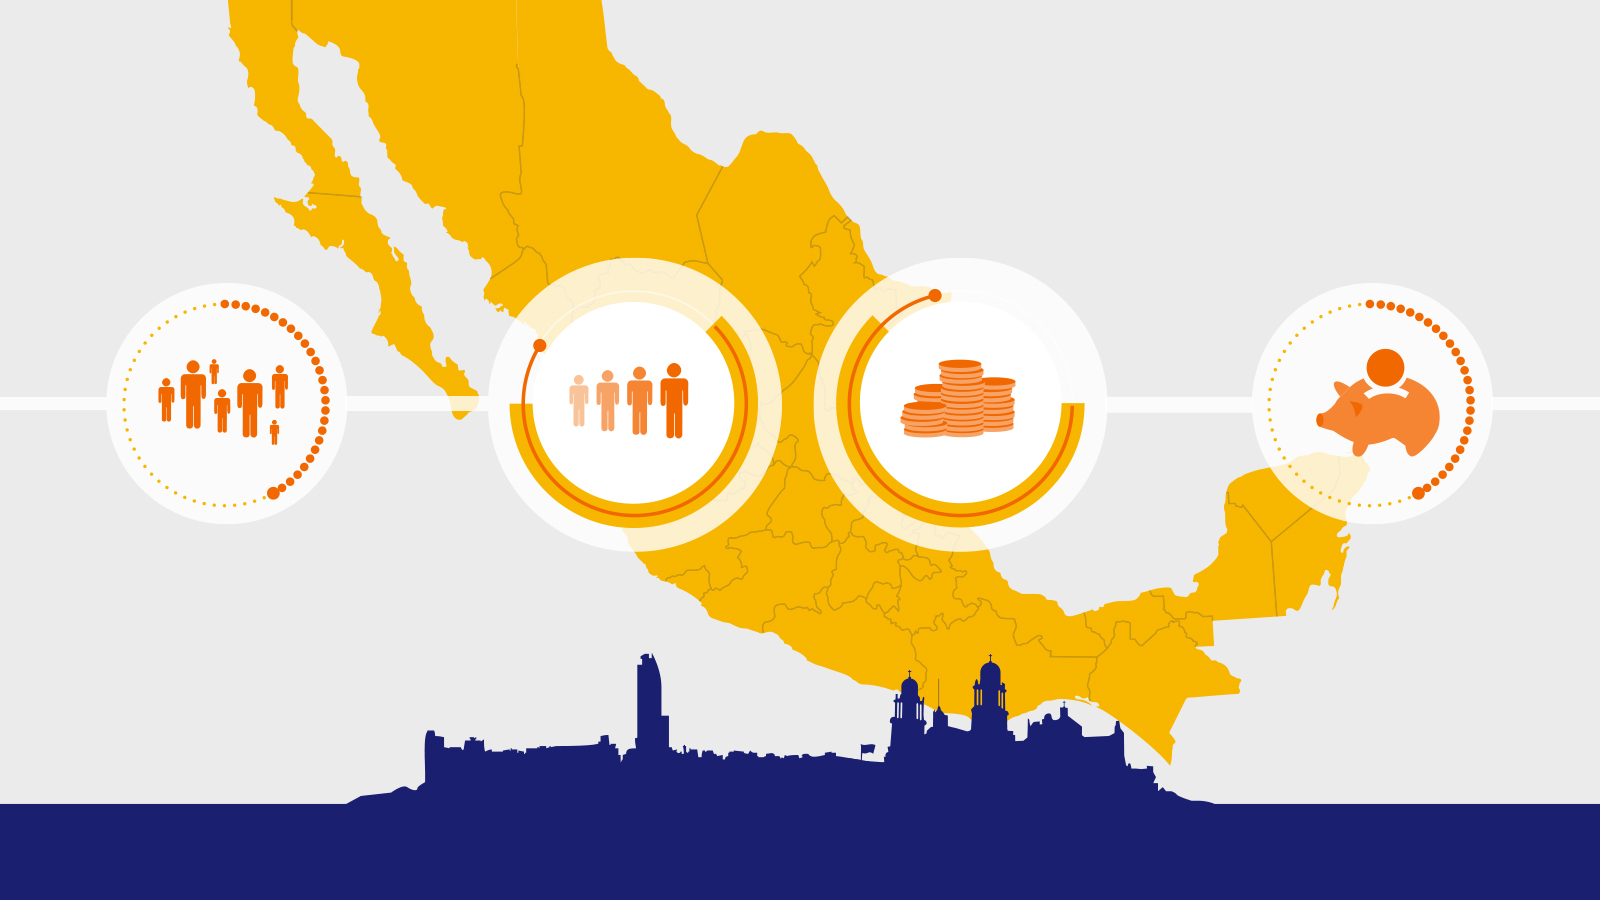 An illustration of Mexico that depicts the growing use of mobile payments in the country.